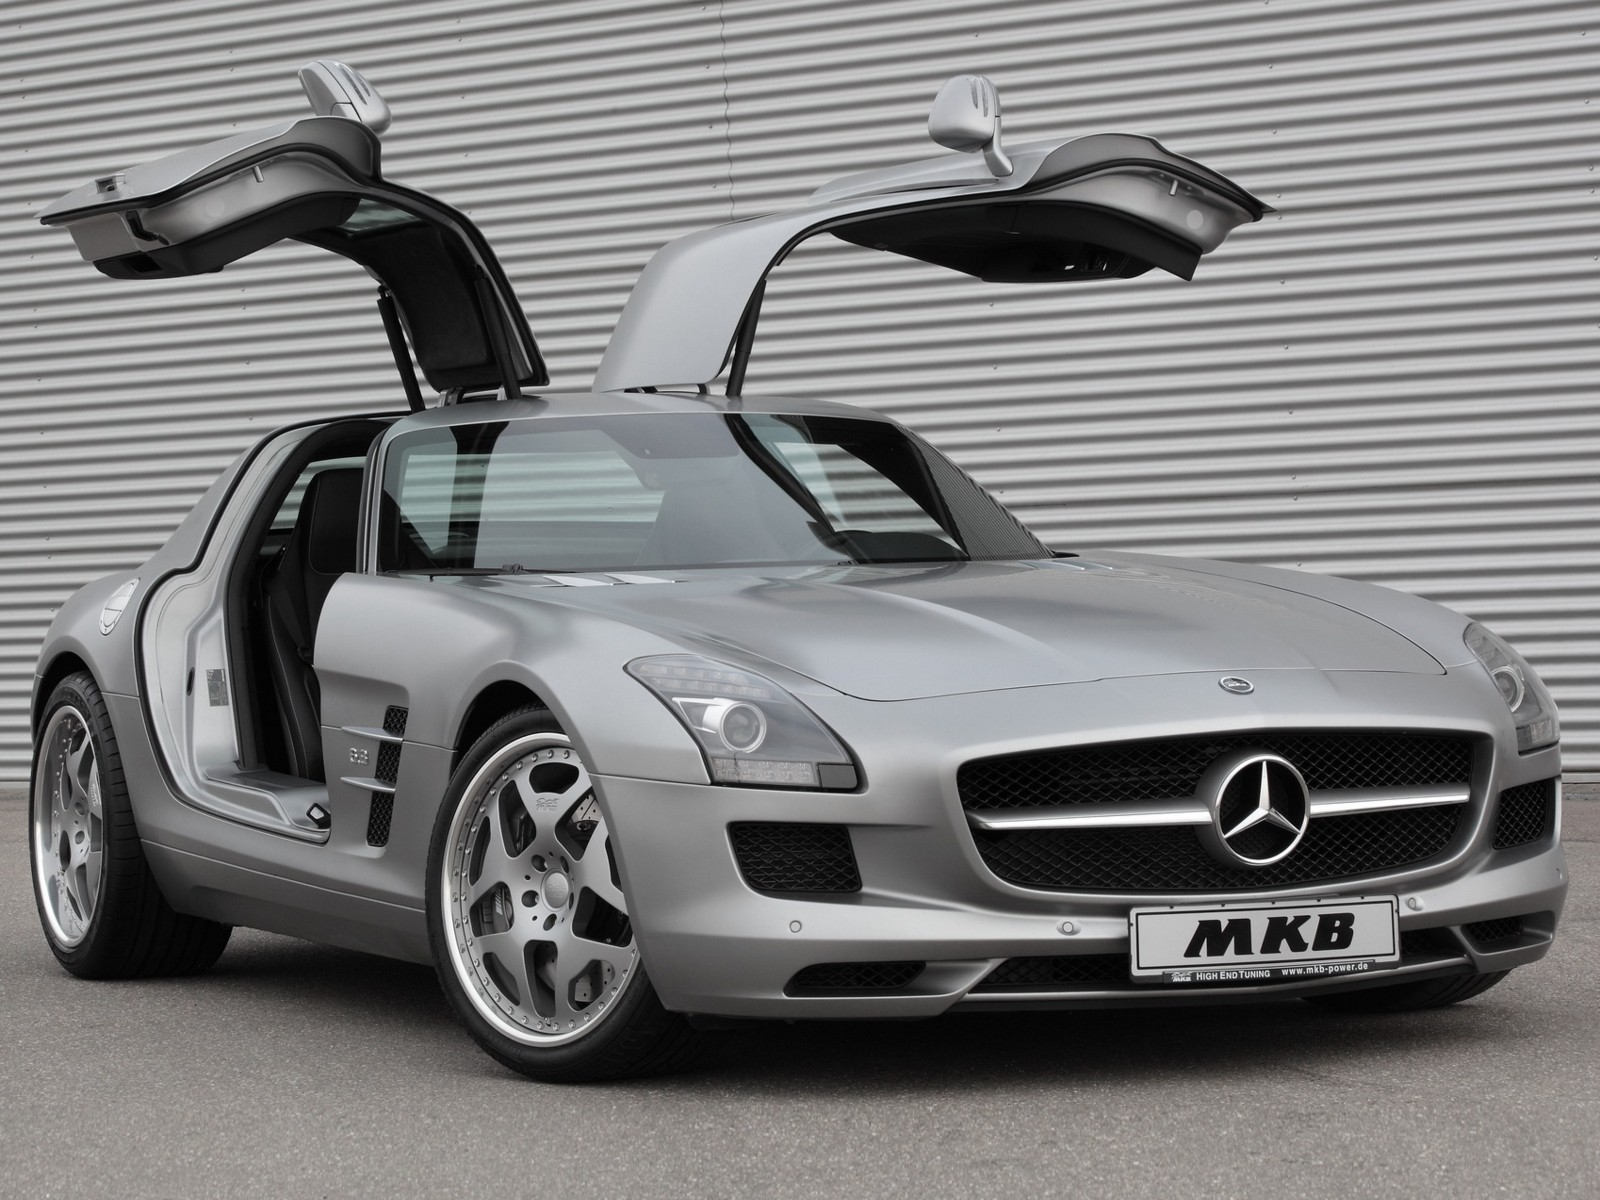 Mercedes benz sls amg gt specs 2012 2013 2014 for Mercedes benz cars images